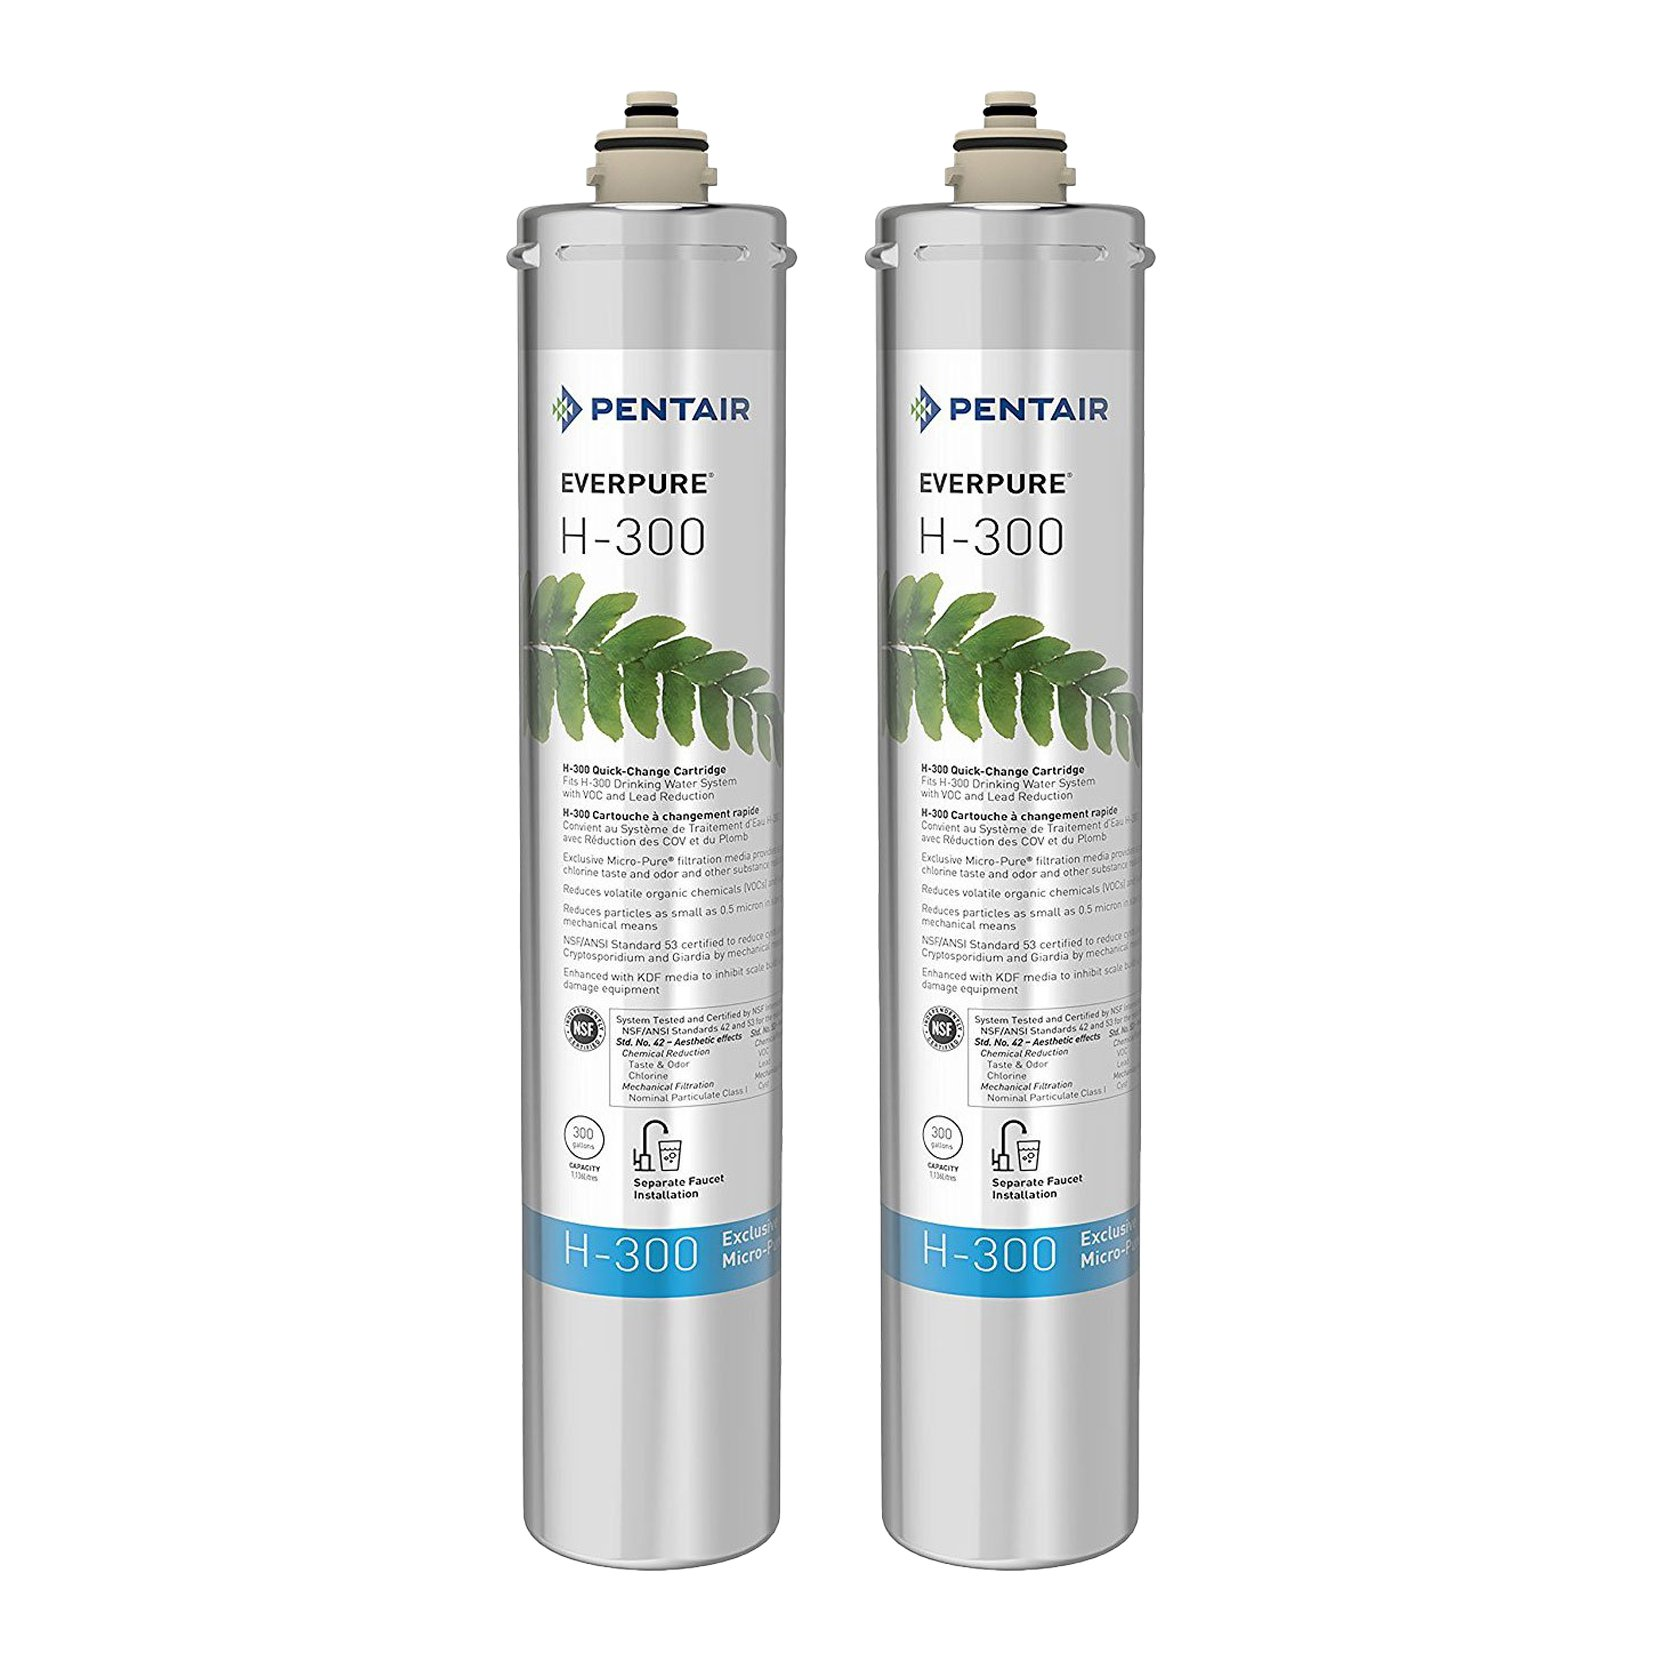 Pentair Everpure H-300 Undersink Water Filter Replacement Cartridge (2 Pack)